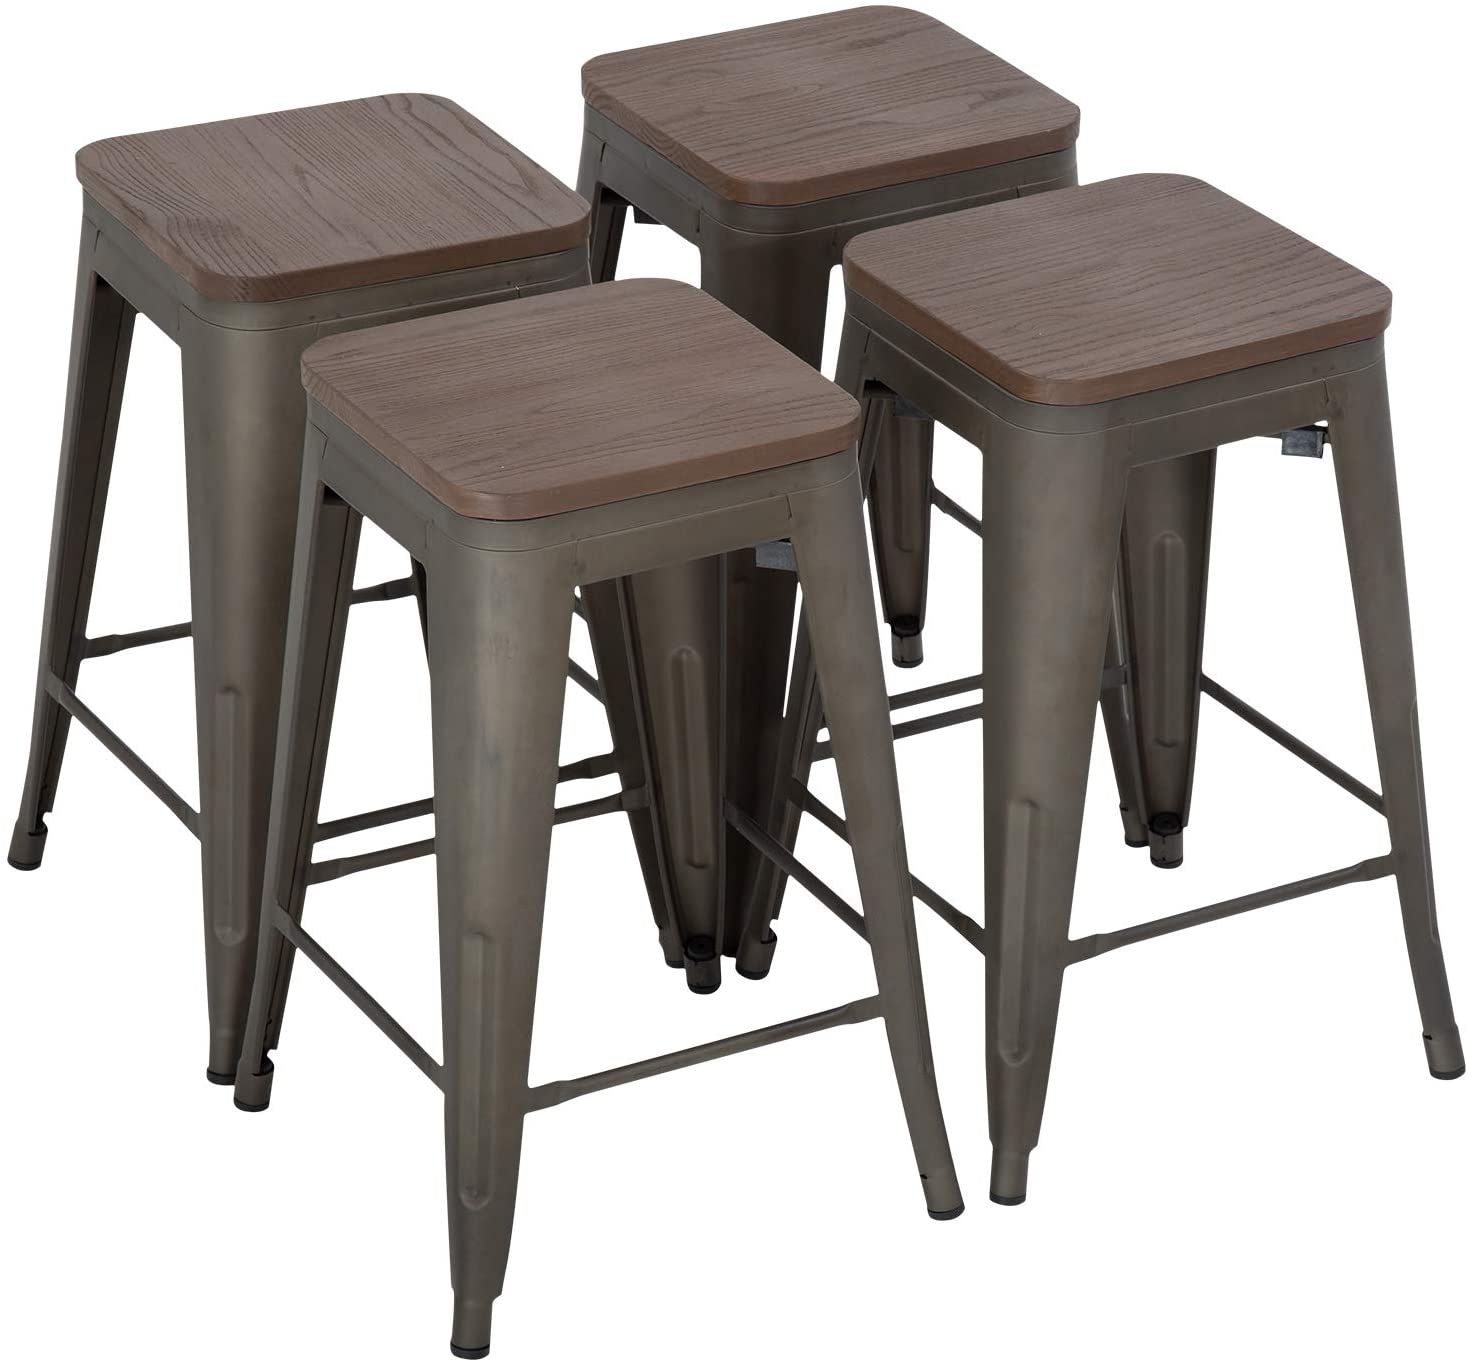 FDW 24 Inches Metal Bar Stools Set of 4 Counter Height Wood Seat Barstool Patio Stool Stackable Backless Stool Indoor Outdoor Metal Kitchen Stools Bar Chairs (Bronze)